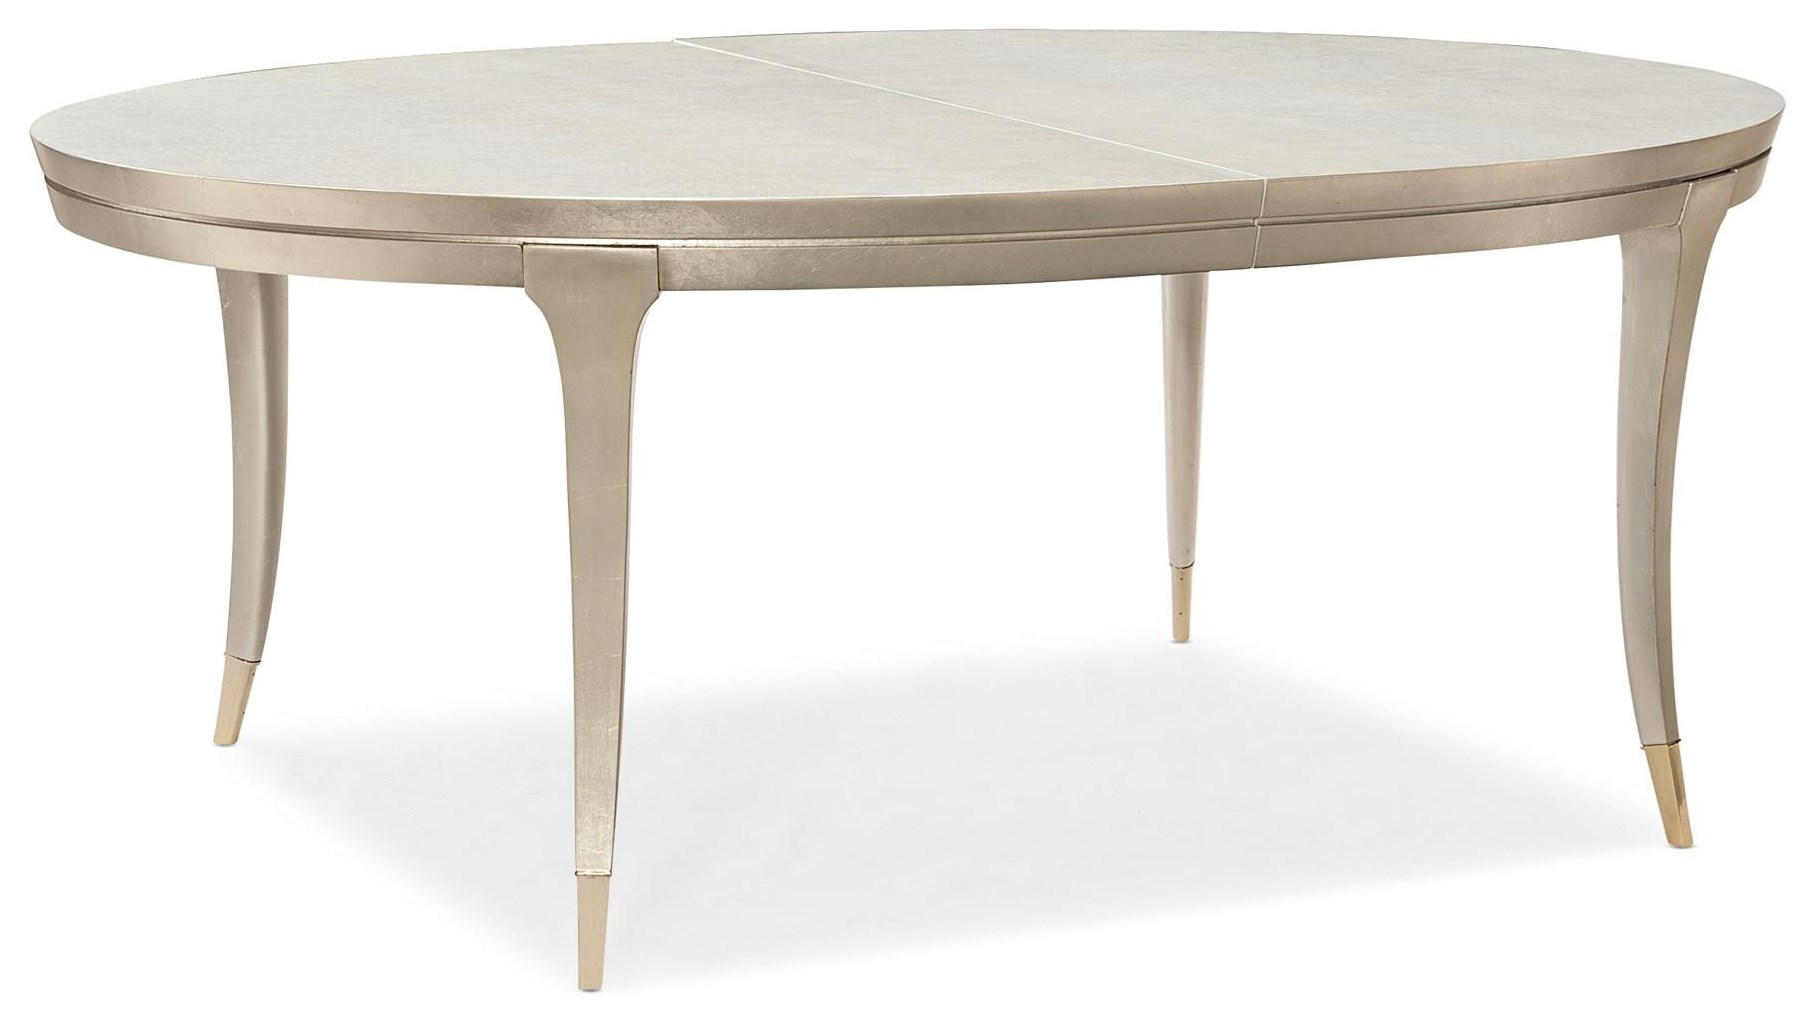 Caracole Classic Oval Dining Table by Caracole at Baer's Furniture